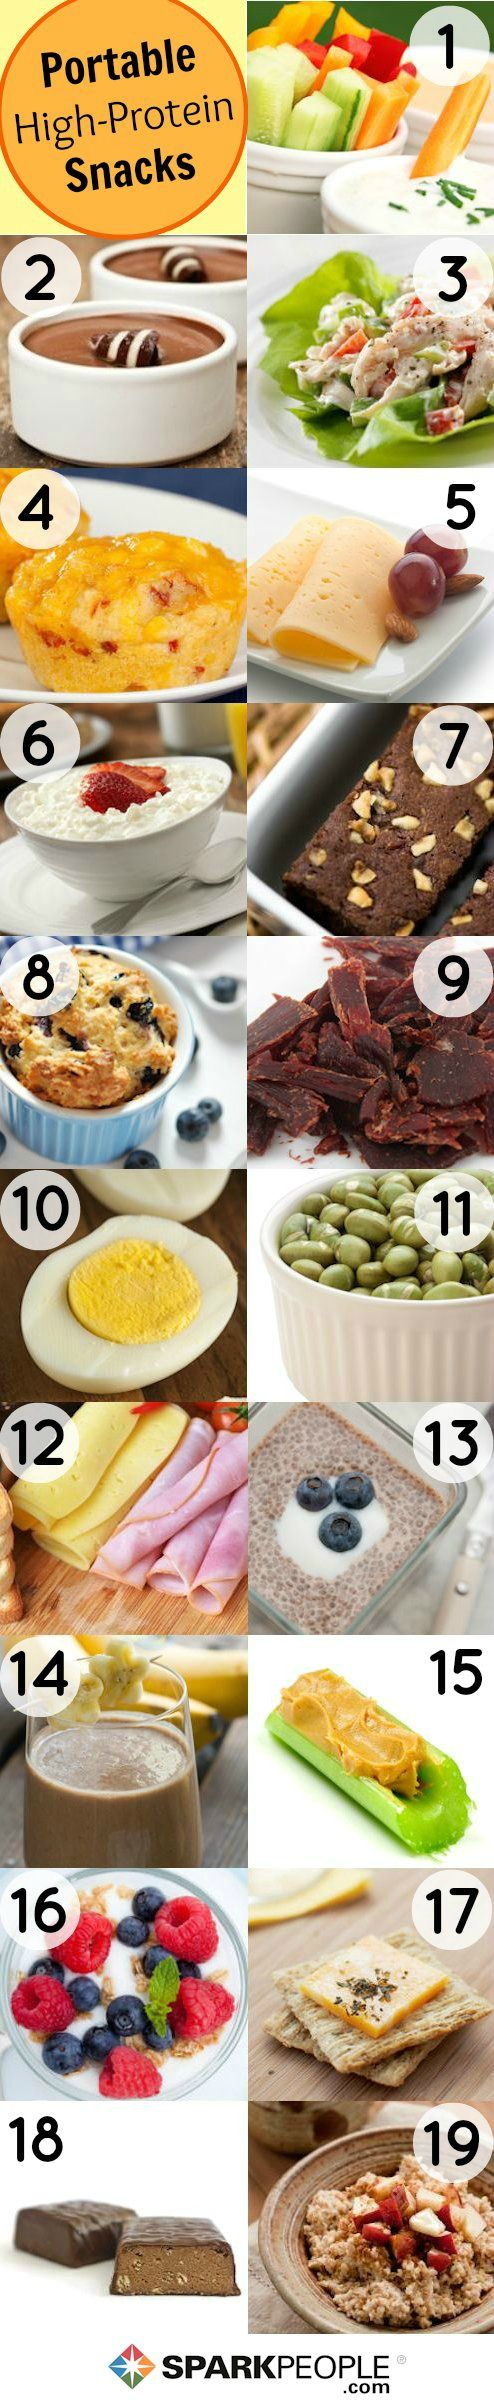 #Protein--don't leave home without it! Love these portable and filling #healthy #snack ideas!   via @SparkPeople